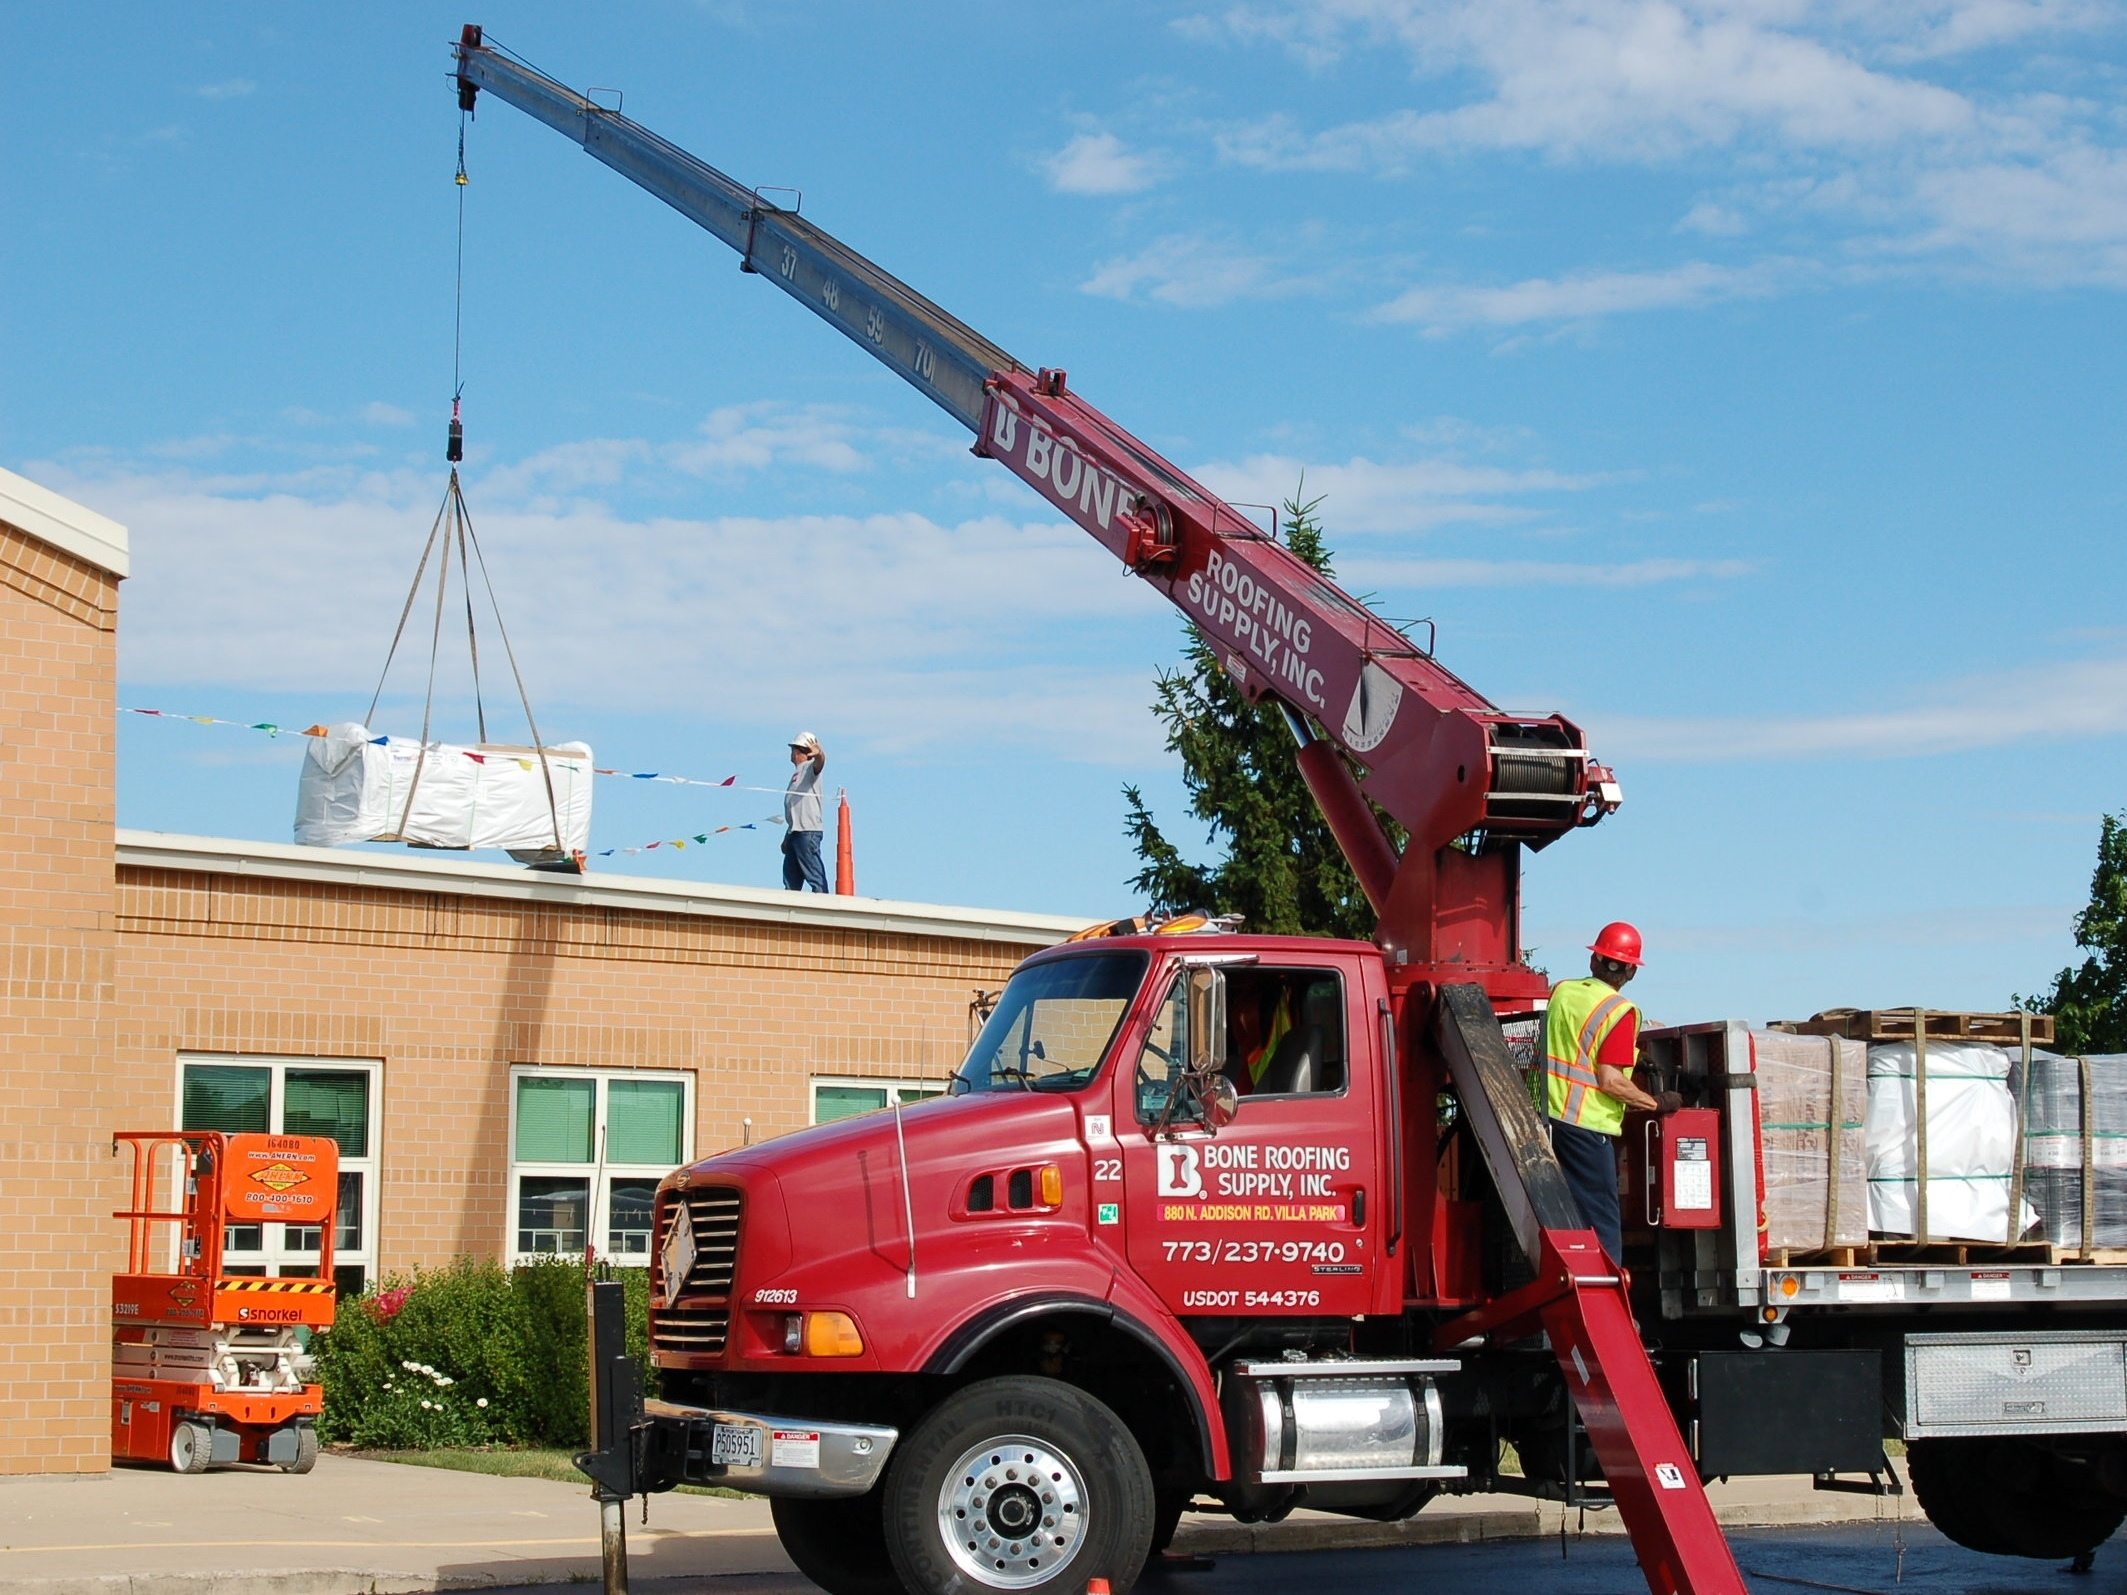 Rooftop Delivery - Whether it's a large job or a small one, getting a full set of roofing supplies placed on the roof is a service that we offer to our contractors. Our knuckle cranes can reach buildings of up to 3-stories while in the tightest of spots, while our stick cranes can reach up to 5-stories. Our cranes eliminate the need for the contractor to rent their own cranes at exacerbating rates to meet their needs.